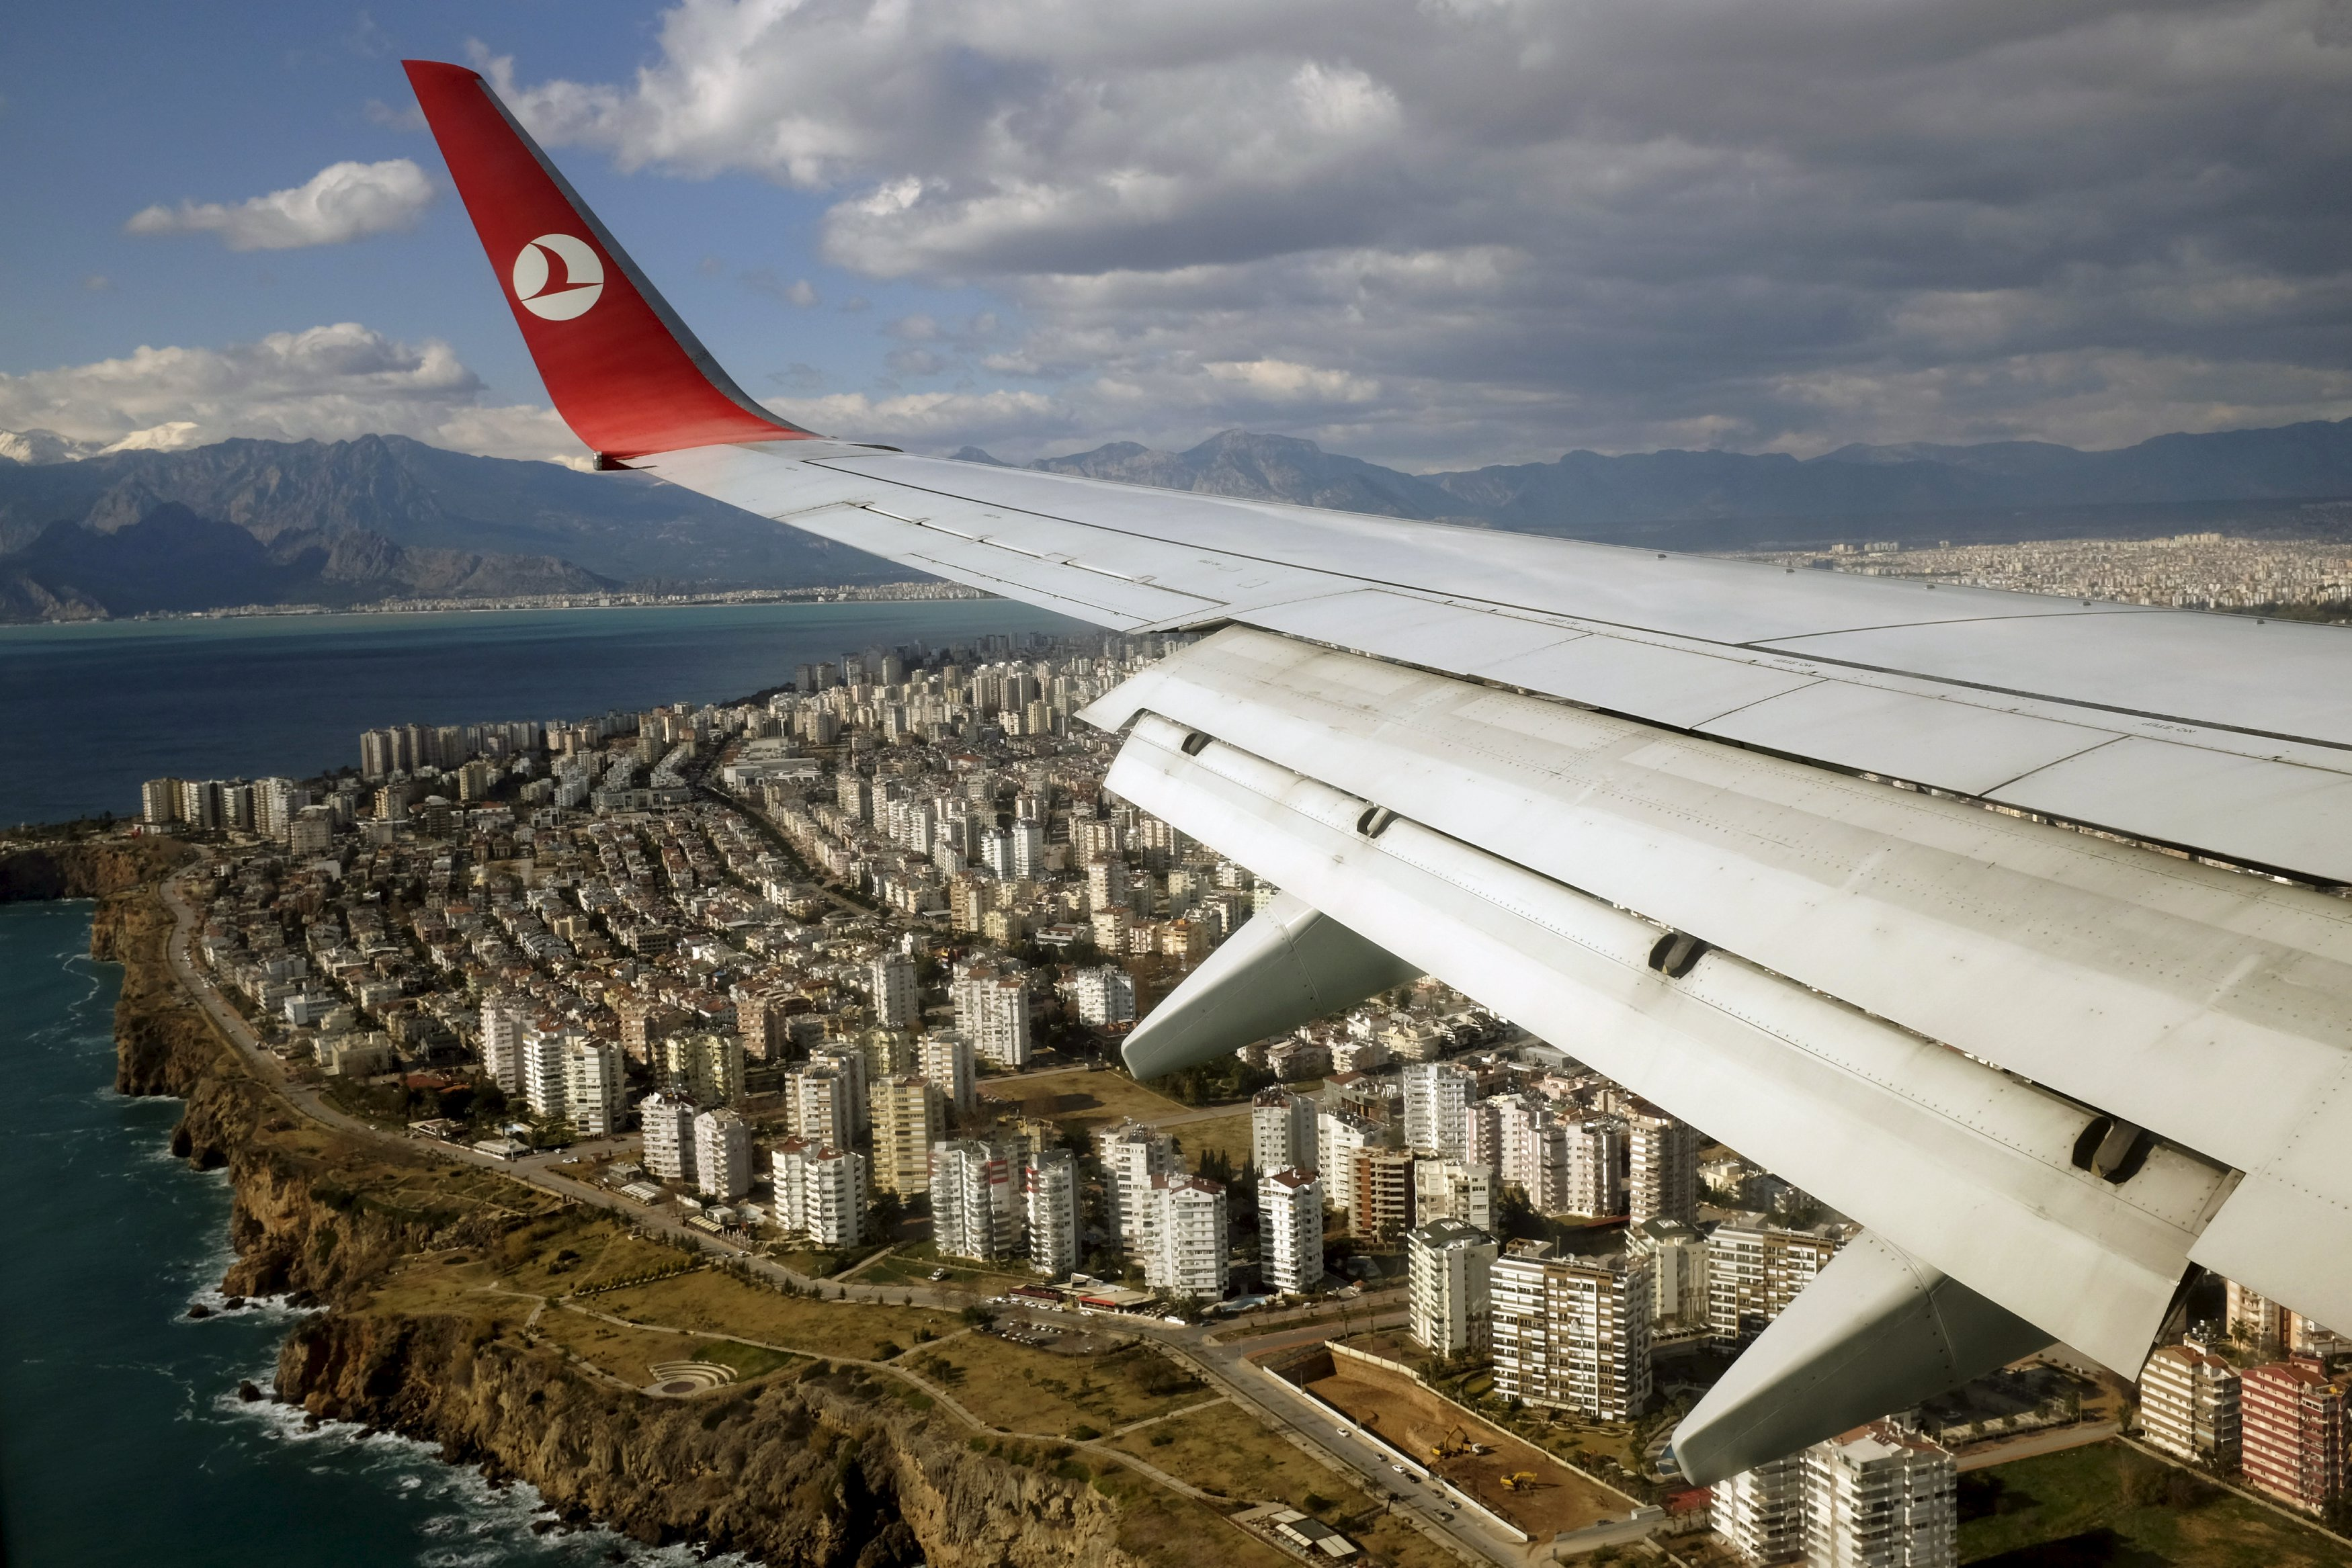 A Turkish Airlines Boeing 737-800 aircraft approaches to land at Antalya International airport in the Mediterranean resort city of Antalya, Turkey, January 8, 2016. Photo: Reuters